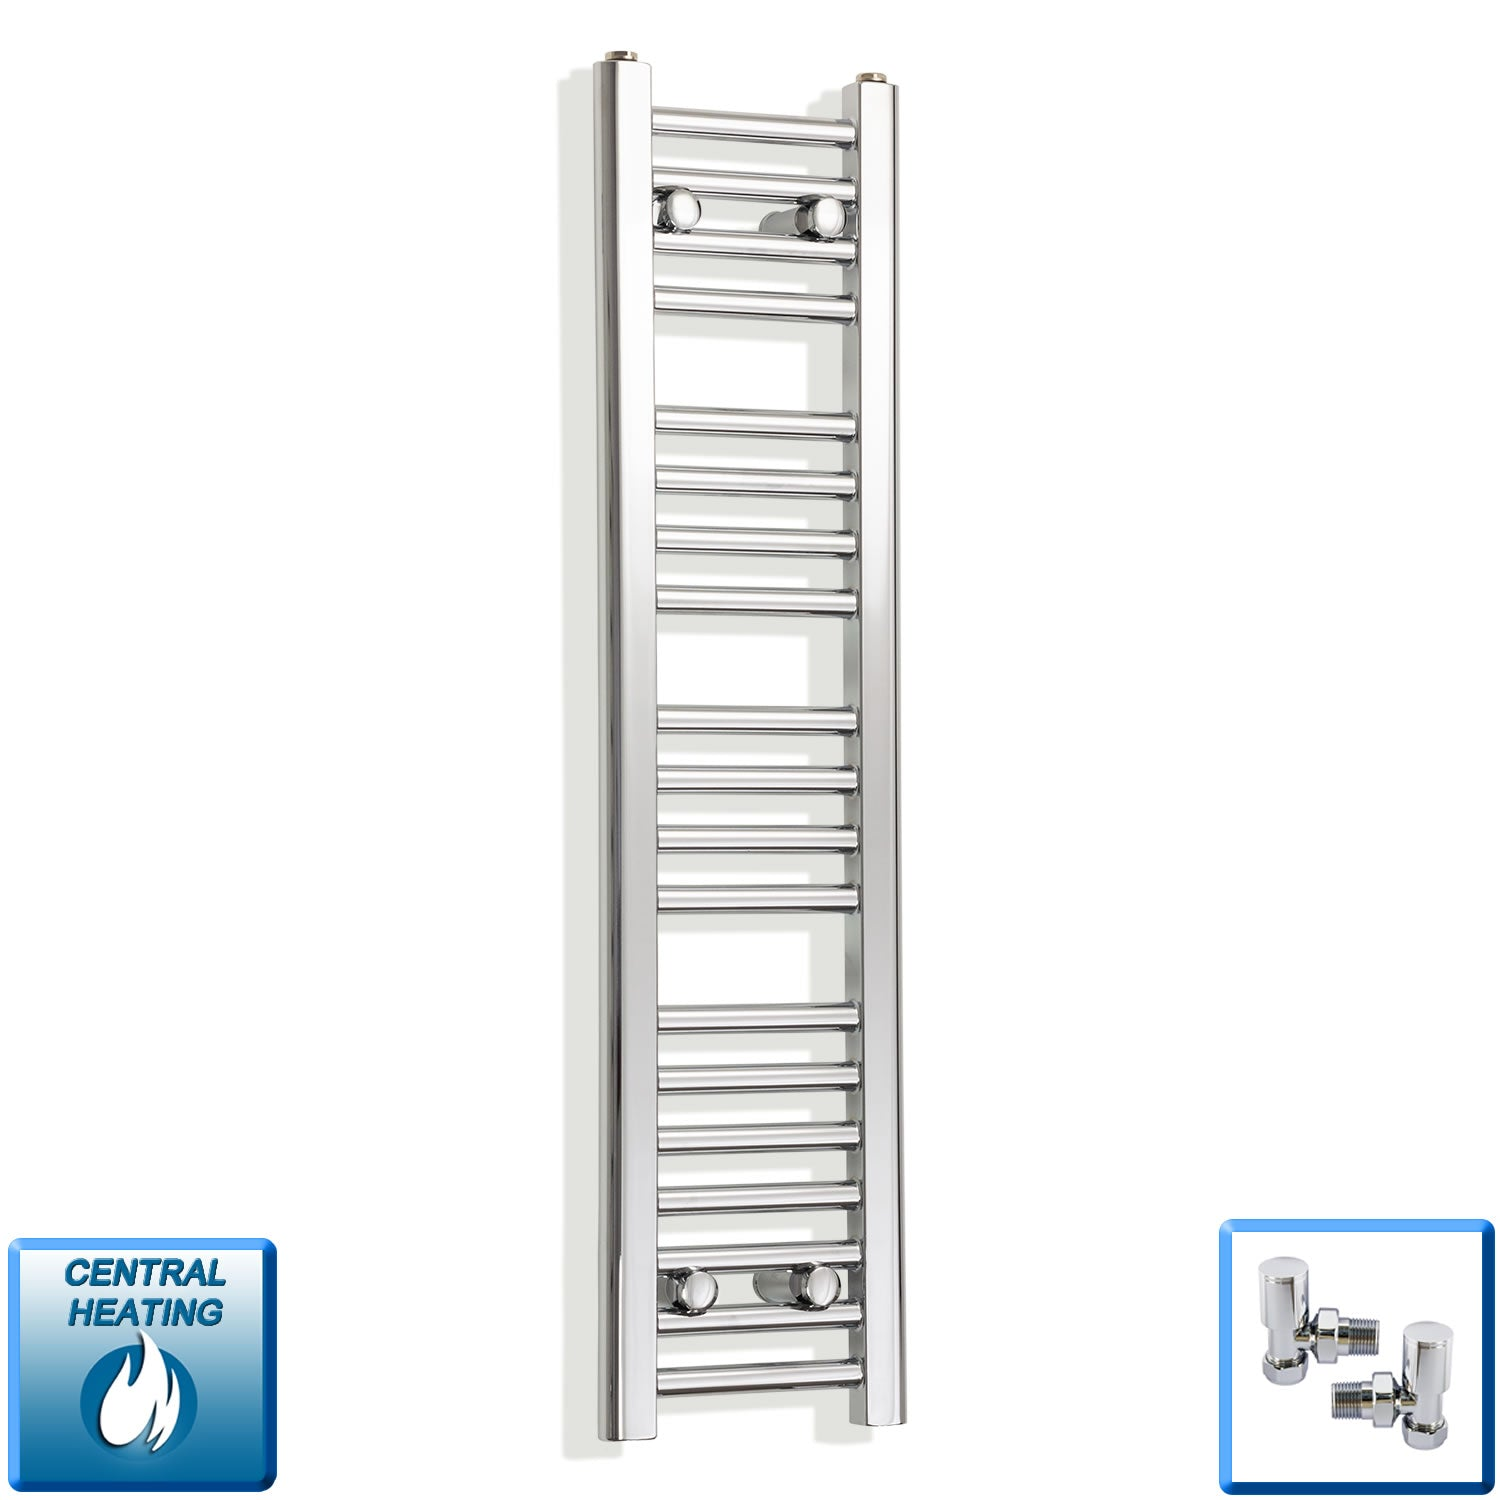 200mm Wide 1000mm High Chrome Towel Rail Radiator With Angled Valve